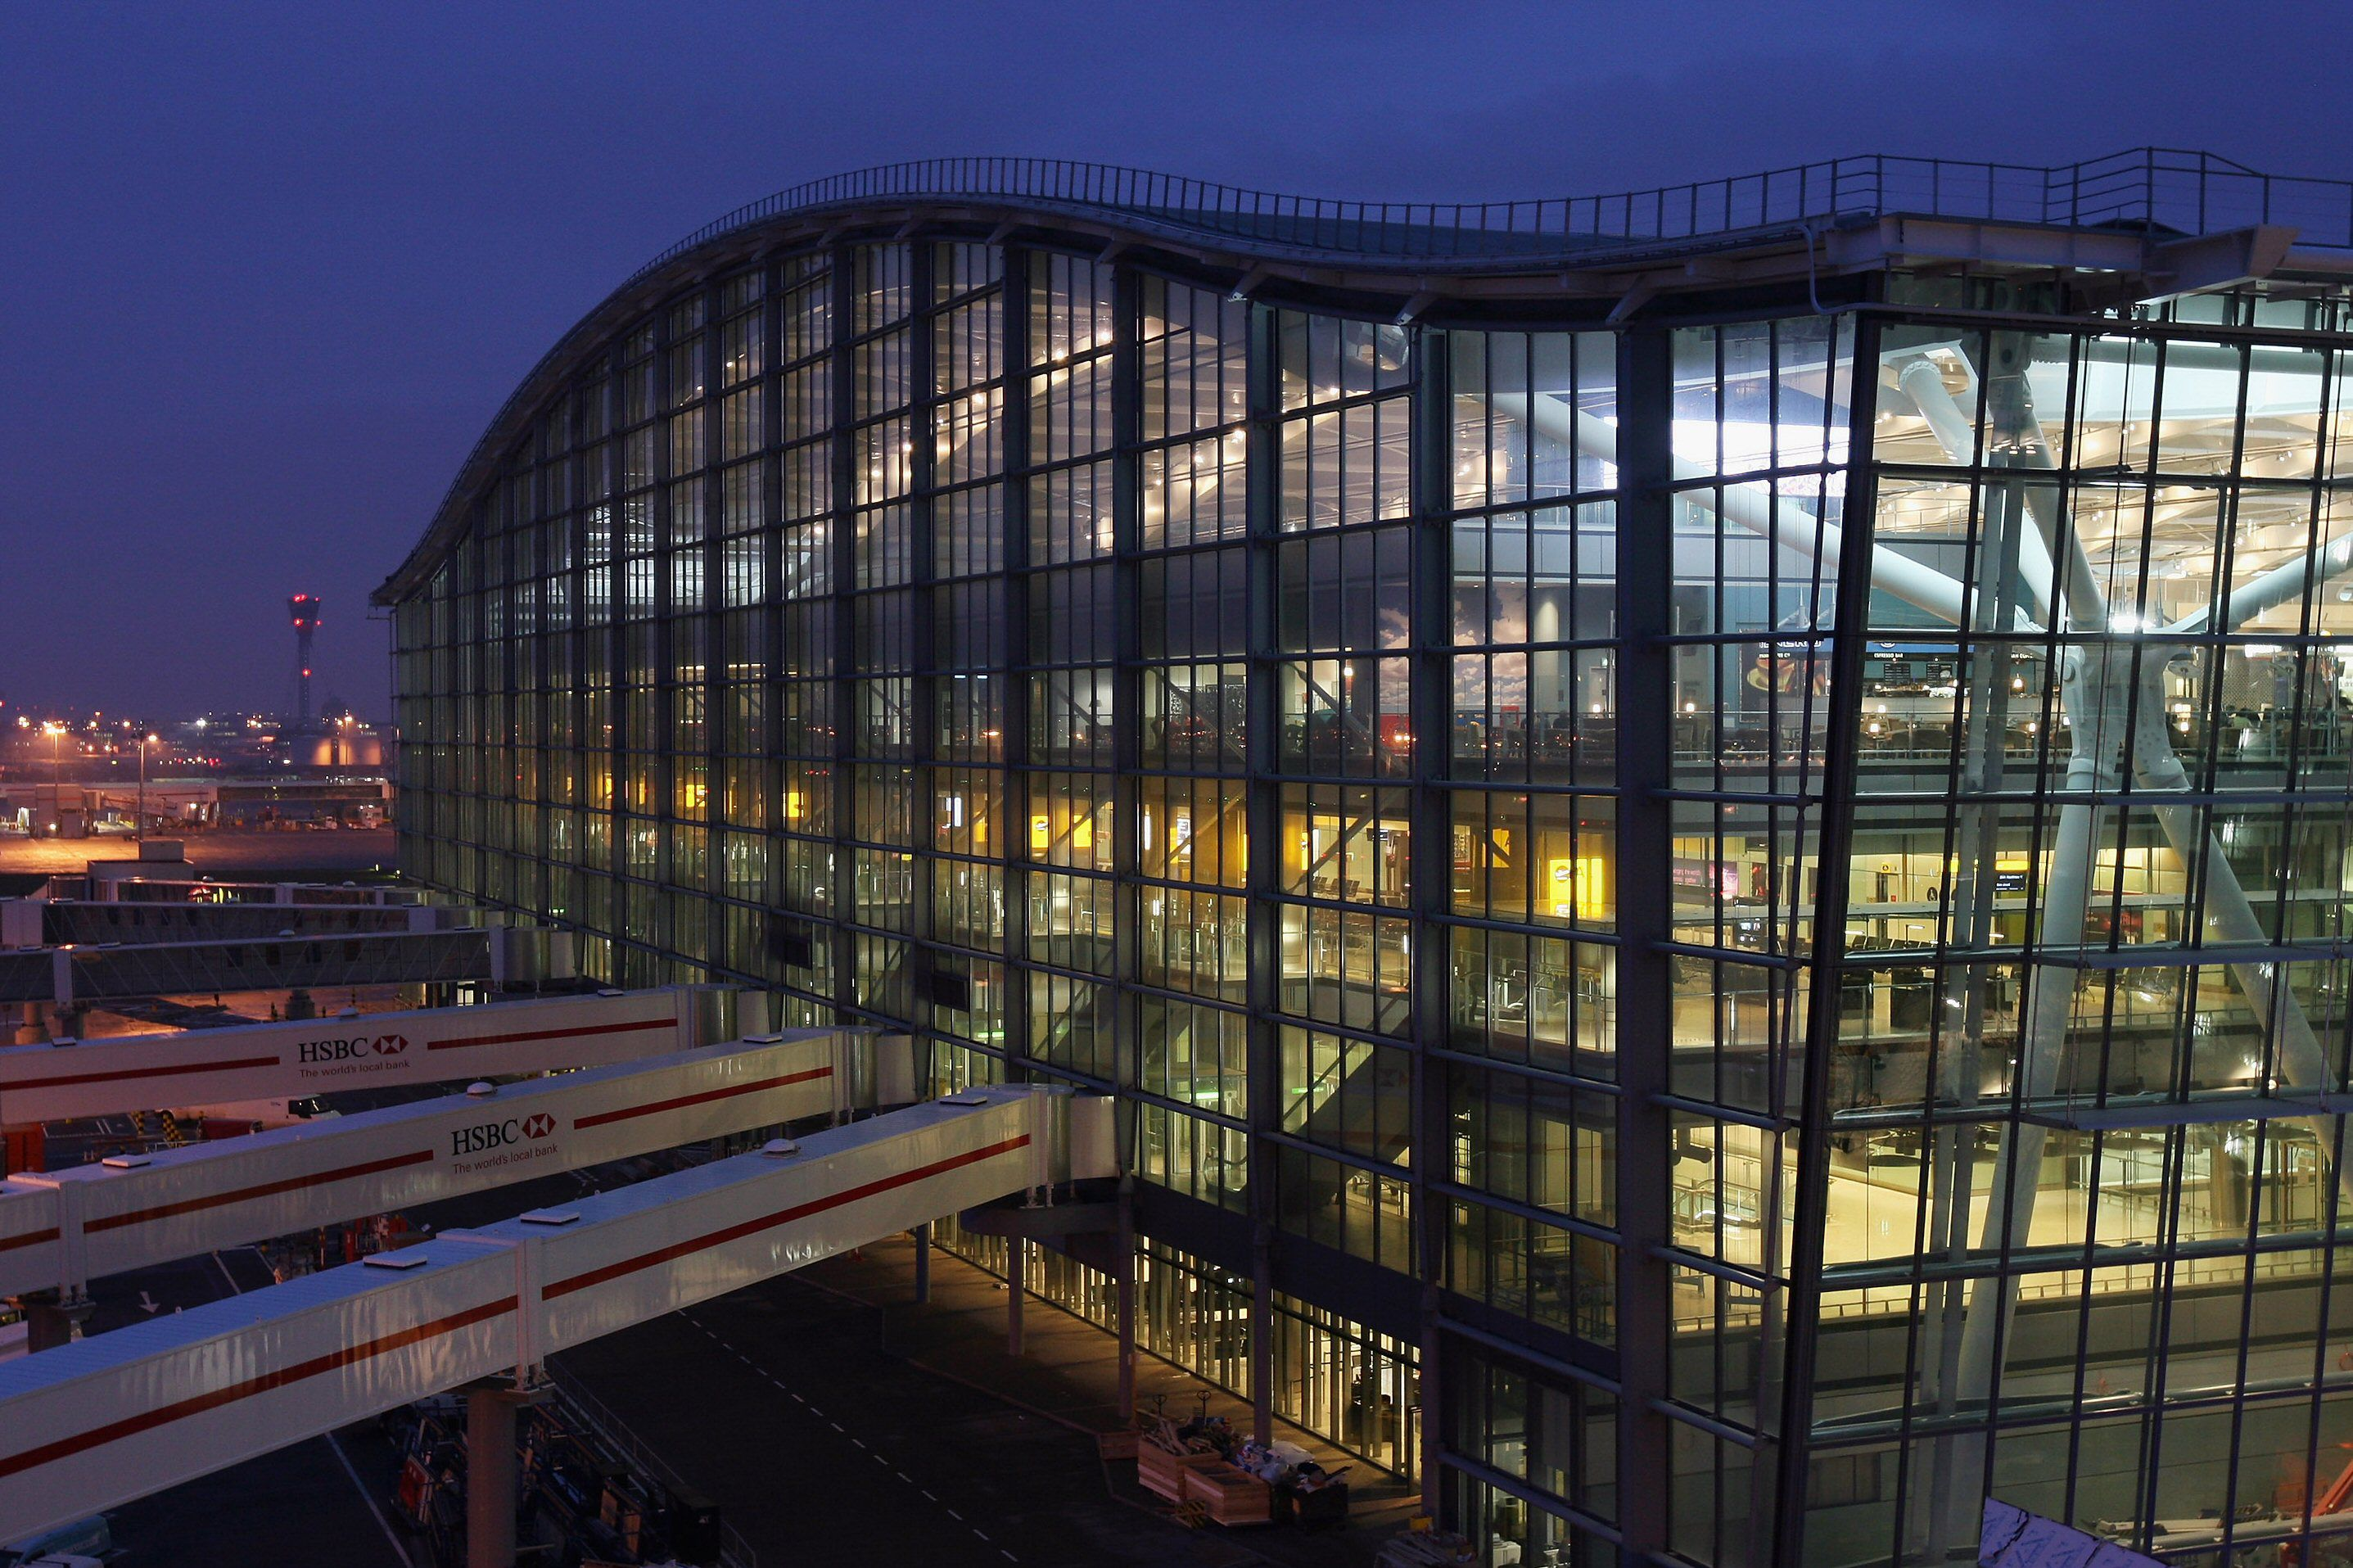 large glass building with curved roof